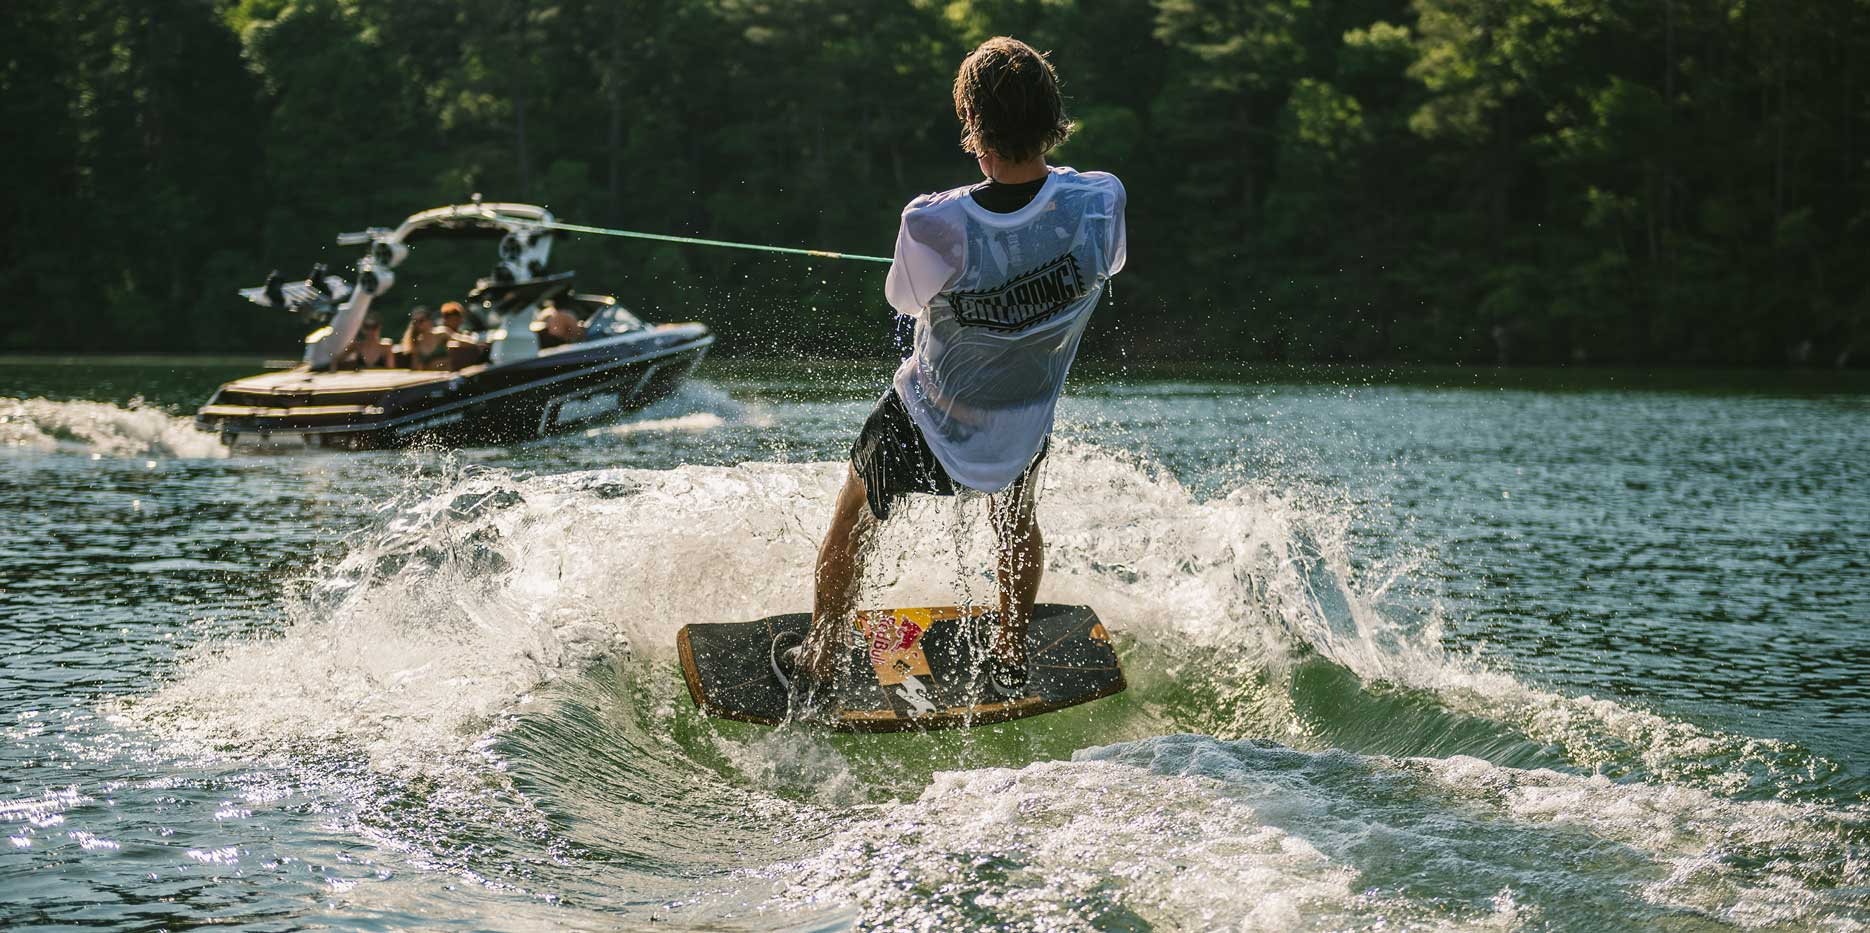 The 22 LSV is wakeboarding, wakeskating, water ski or wakesurfing ready with the touch of a button.